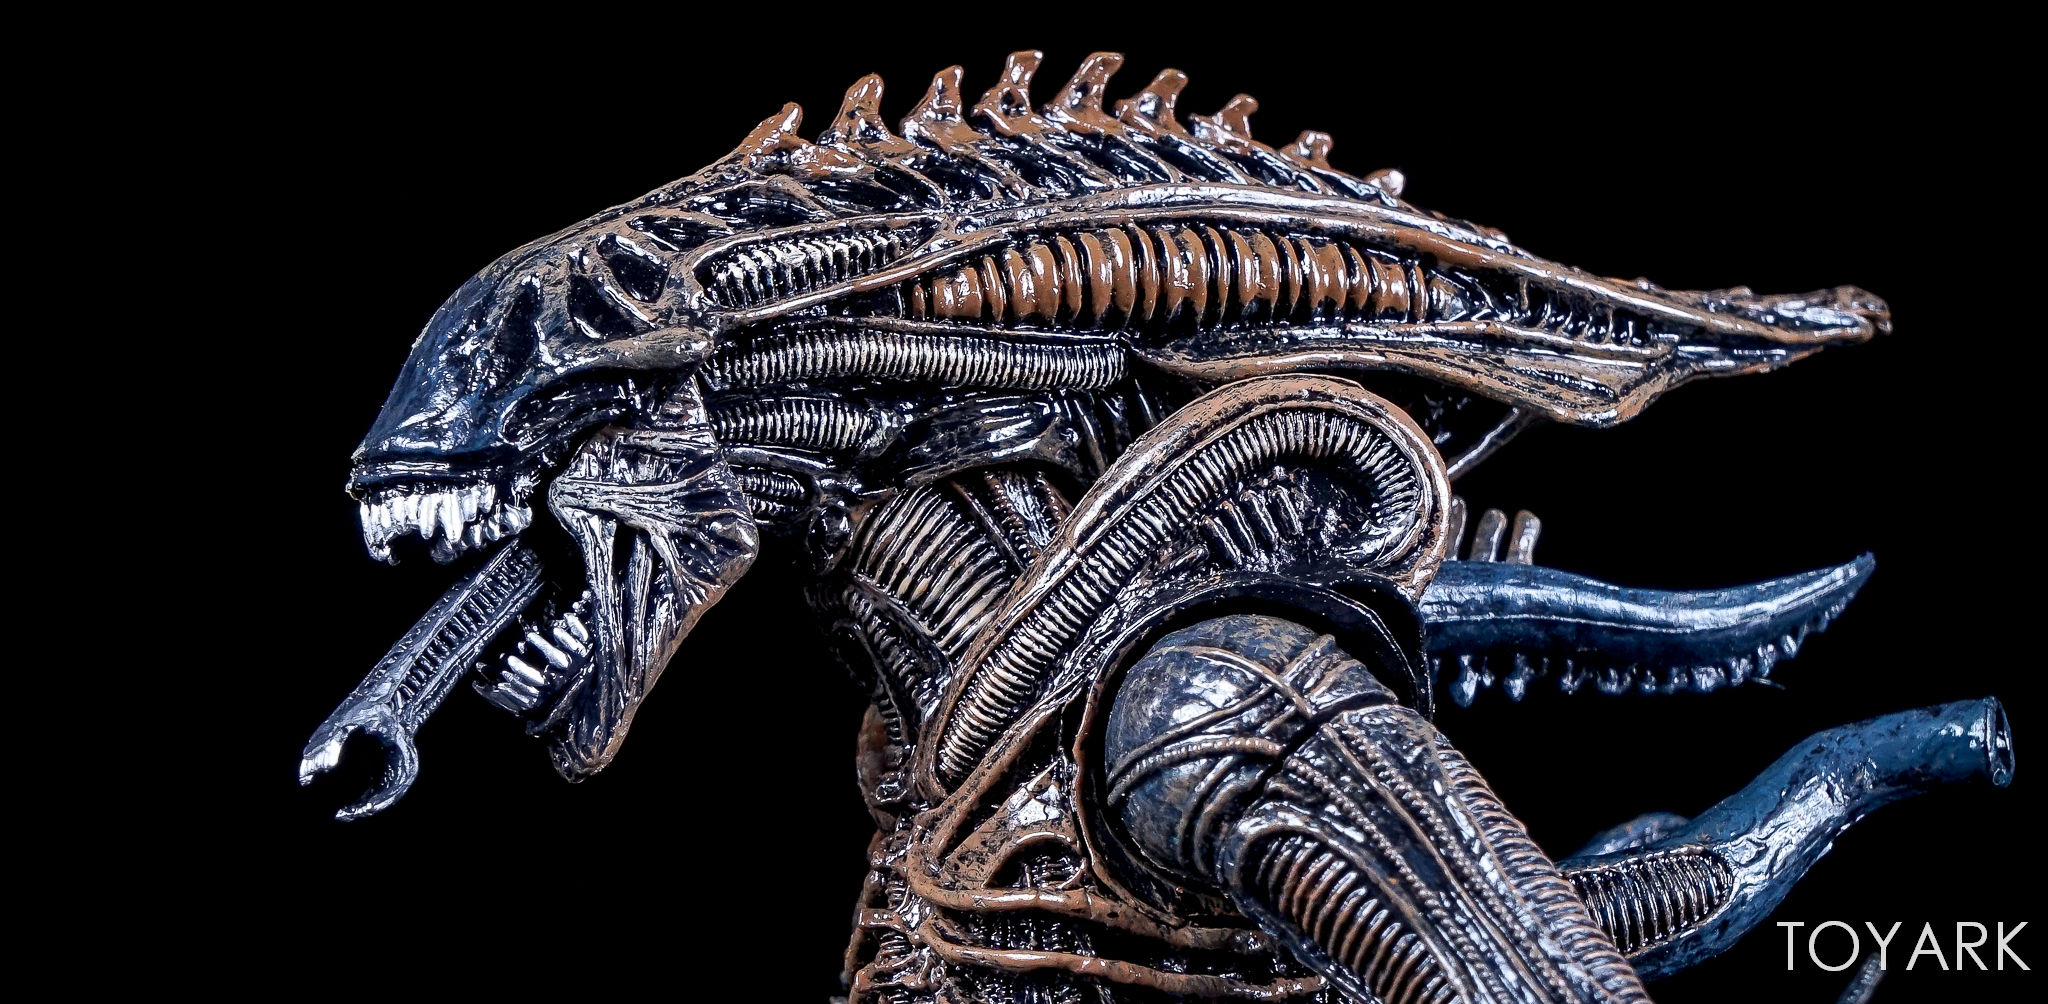 http://news.toyark.com/wp-content/uploads/sites/4/2017/08/NECA-Alien-Series-11-Figures-019.jpg